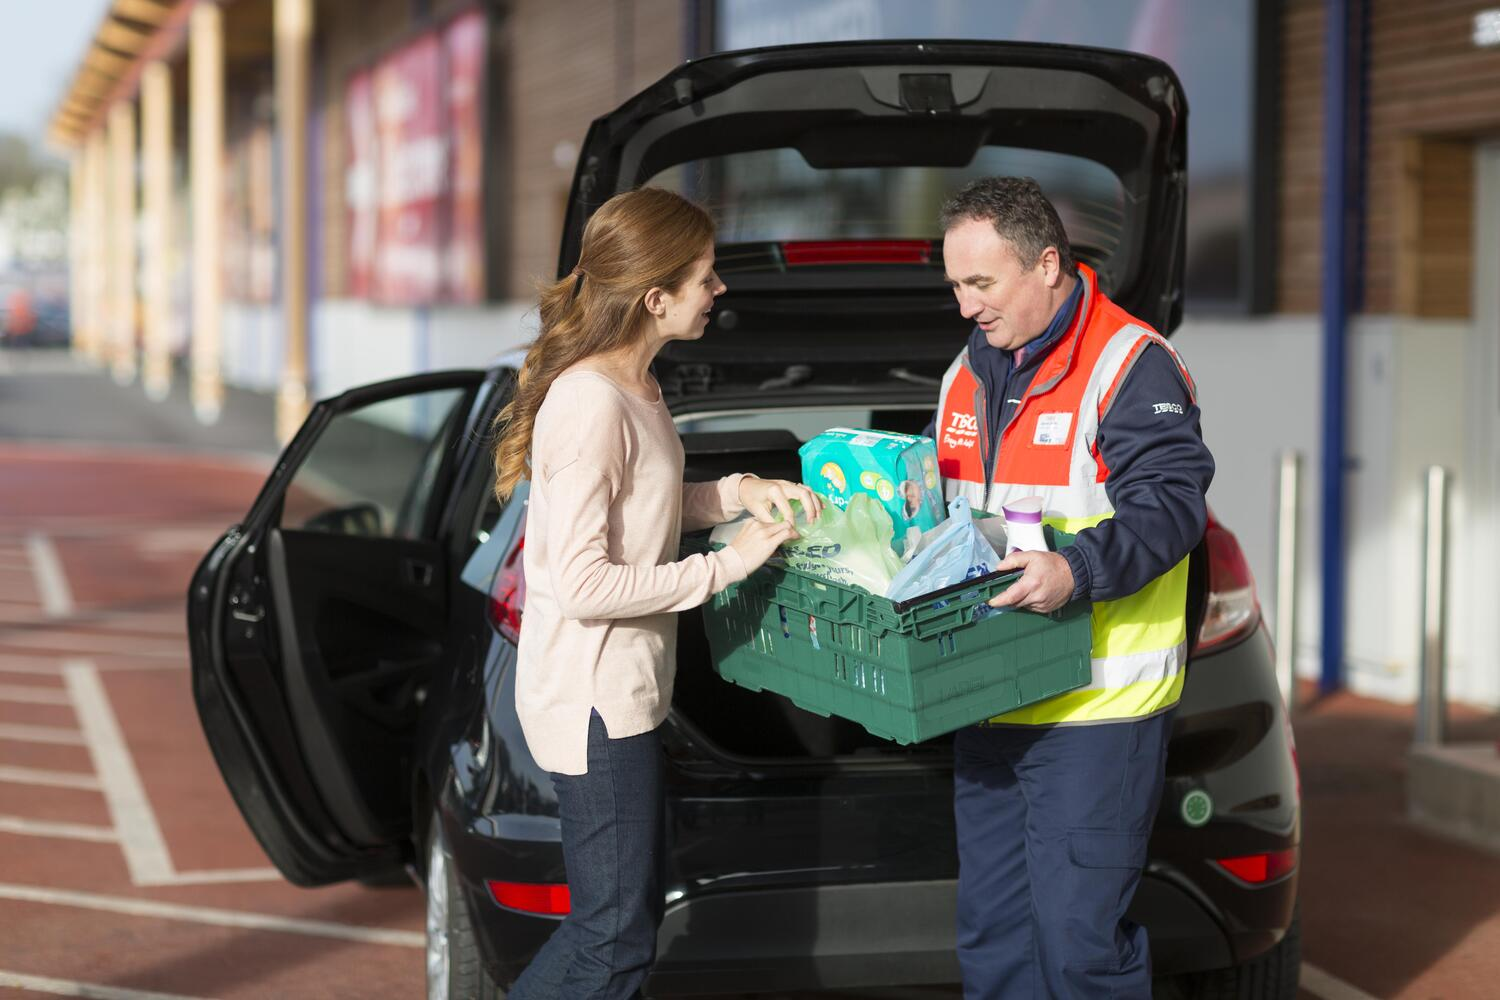 Click+Collect. We pick and pack your shopping – you just collect it at a time that suits you.